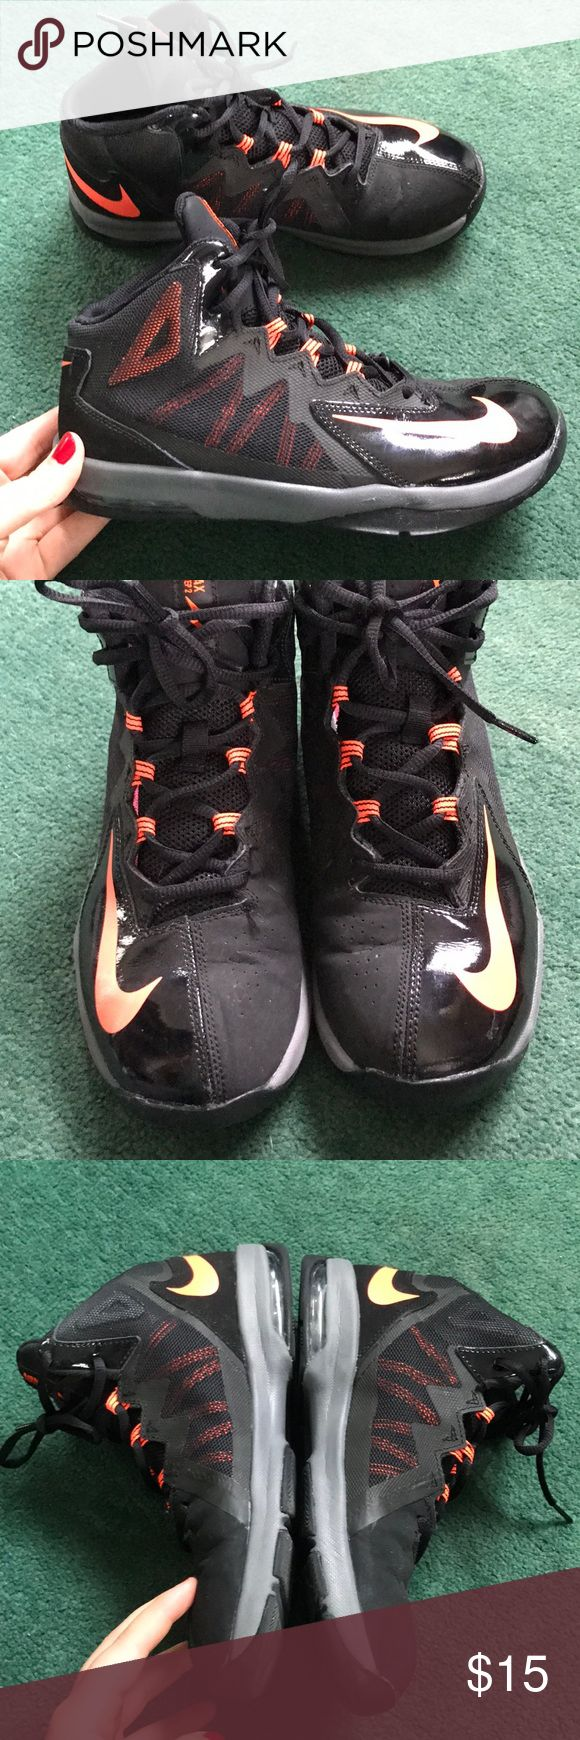 Nike AirMax Stutter Step 2 Basketball Shoes In good used condition. Unisex. Orangish color and black. Nike Shoes Sneakers